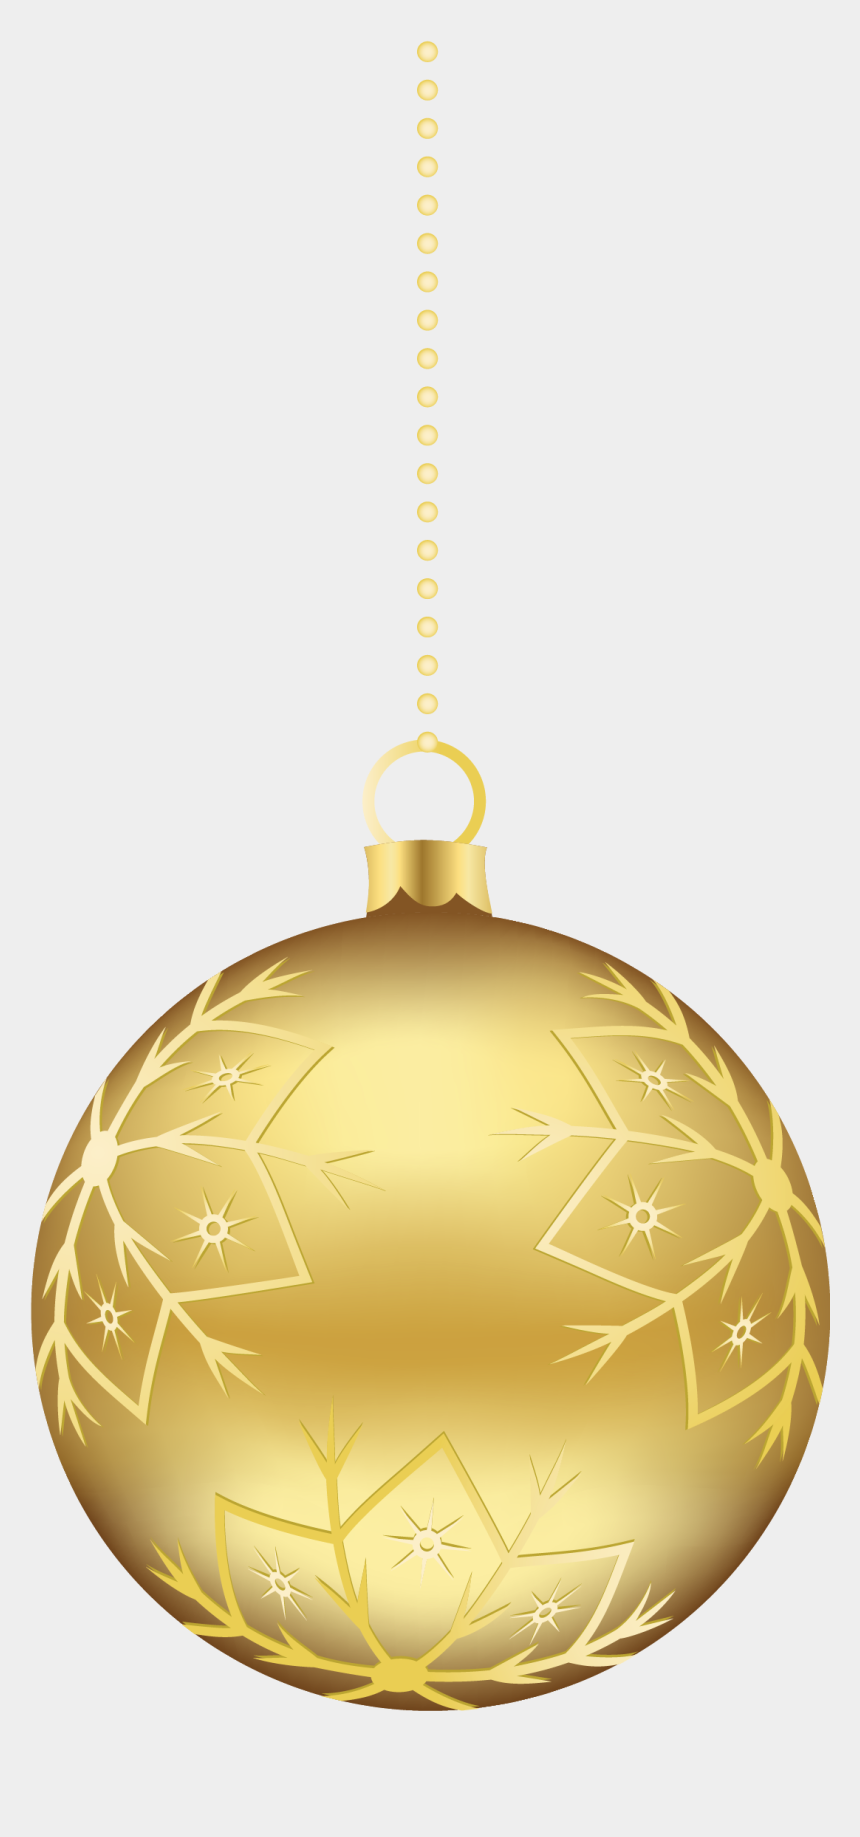 ornaments clipart, Cartoons - Free Icons Png - Gold Christmas Ornament Png